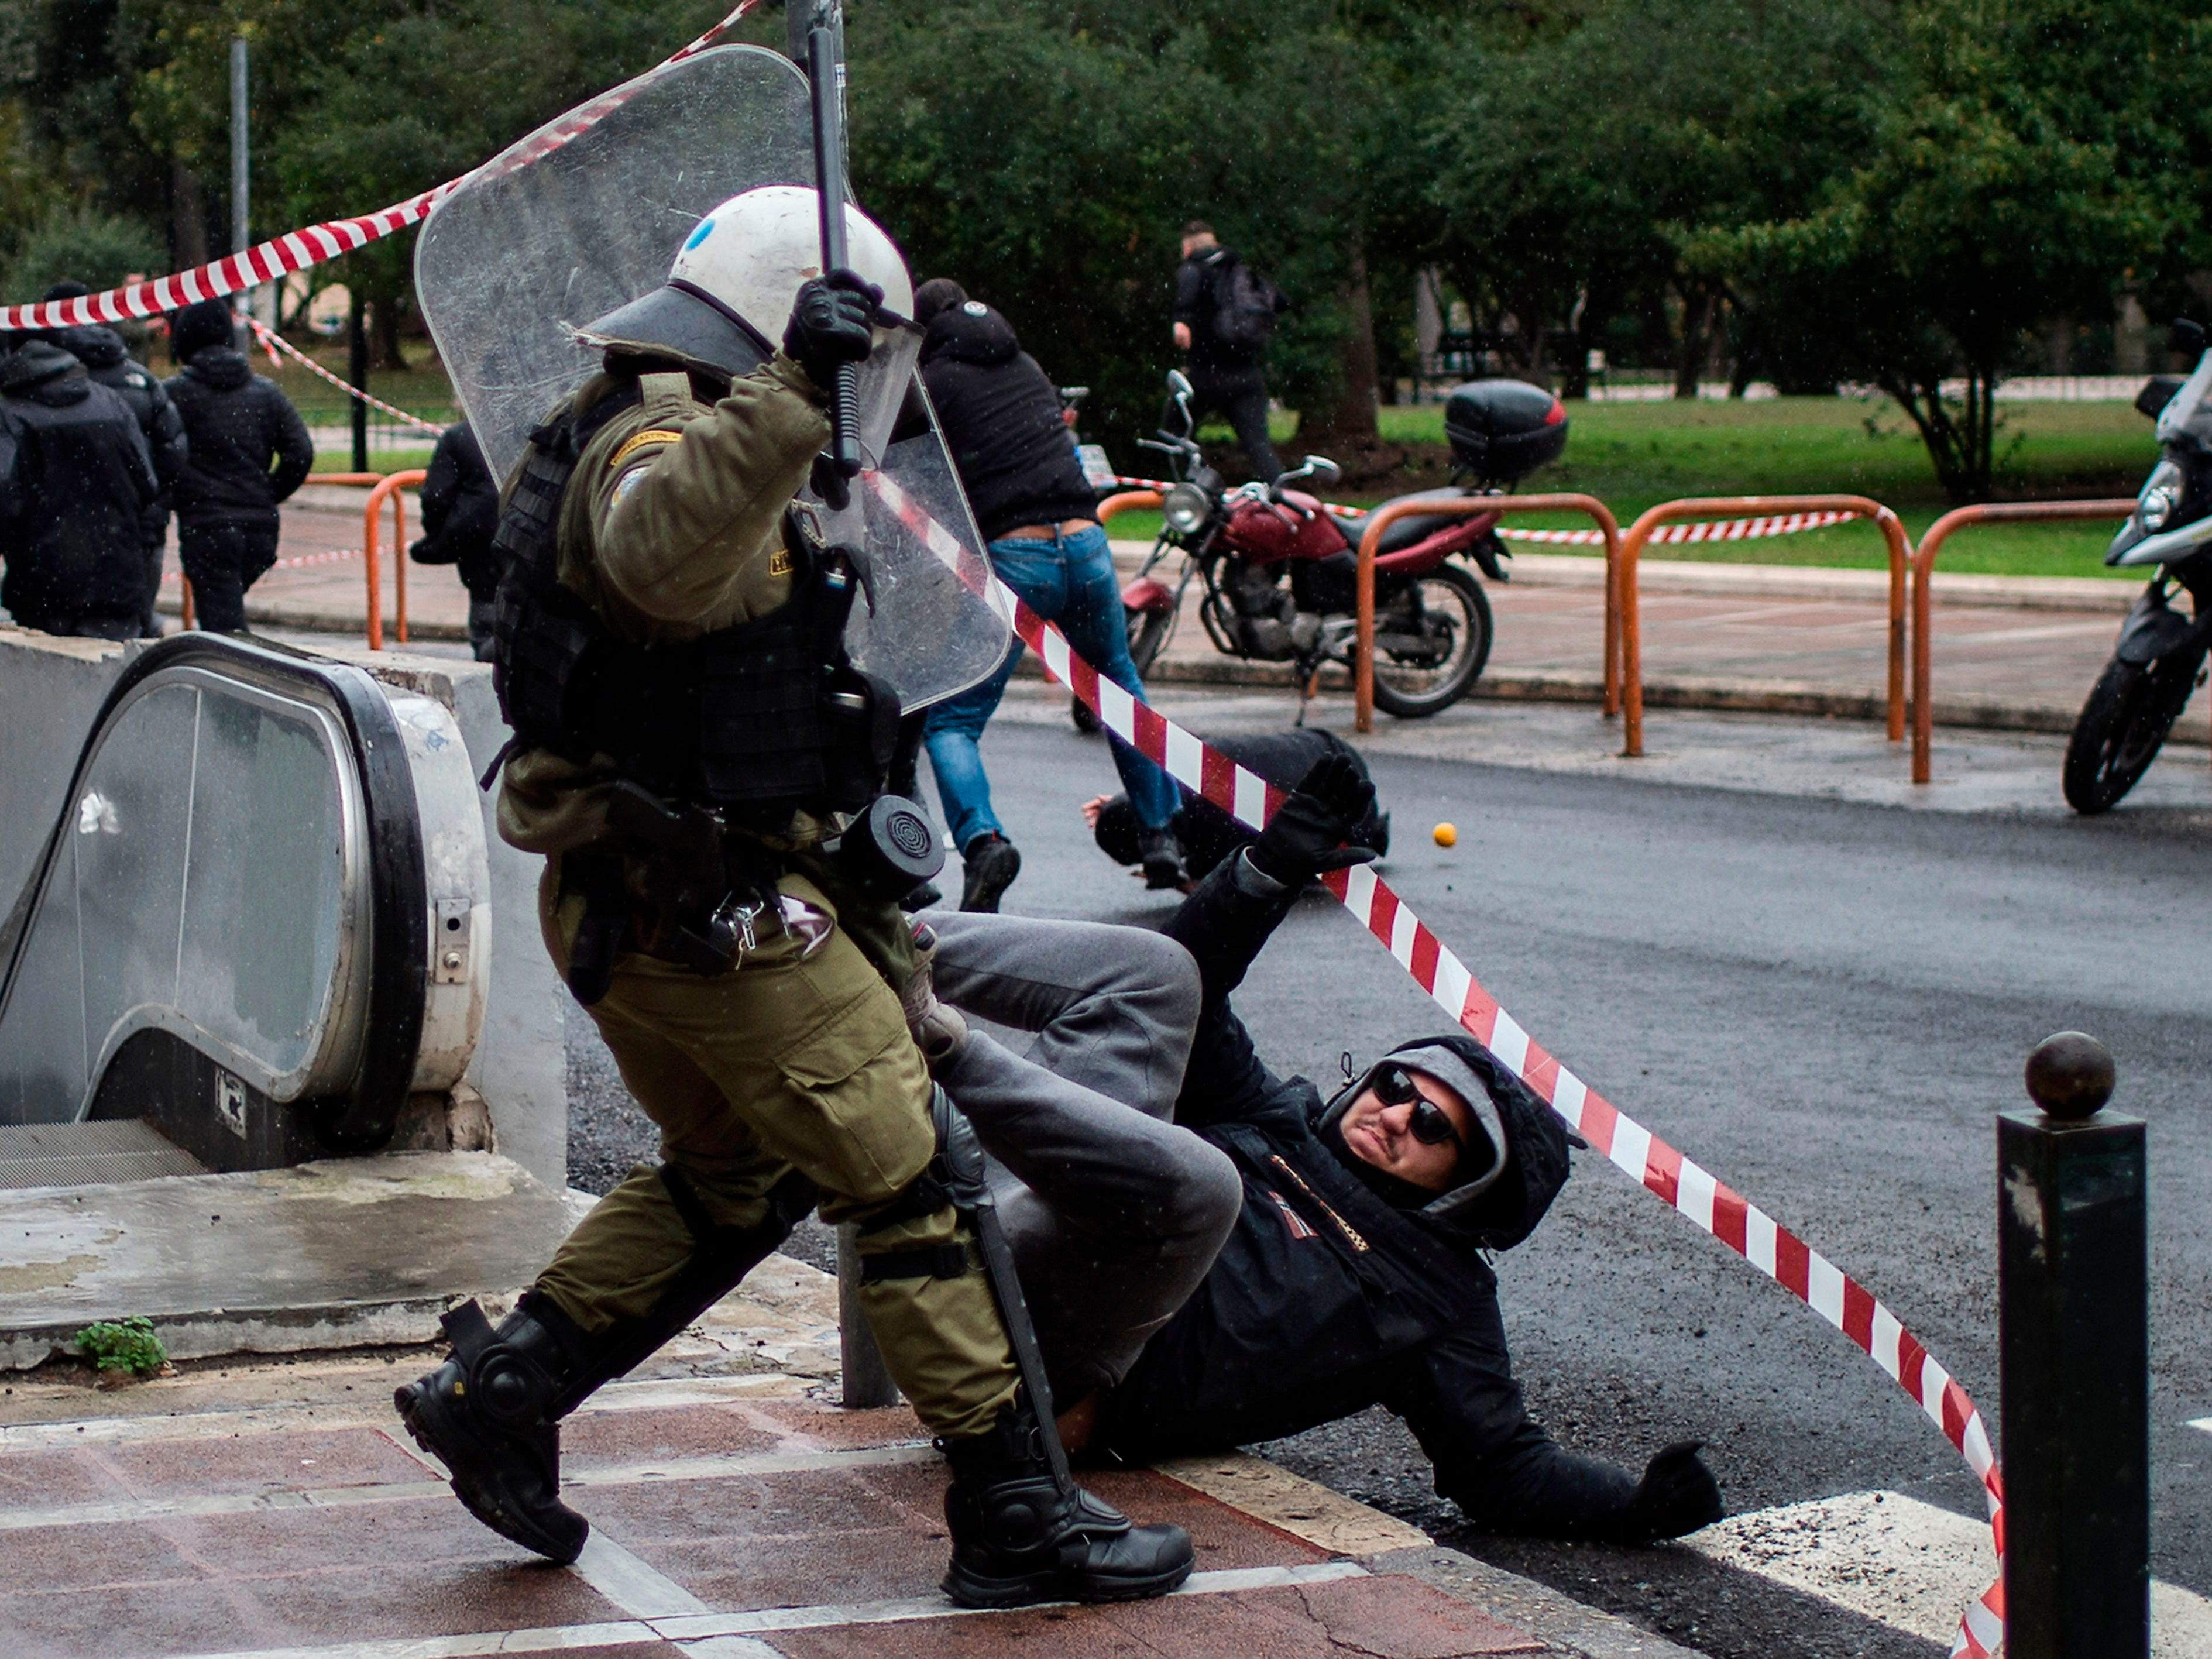 Police clash with protesters on Dec. 6, 2018 in Athens during a demonstration to mark the 10th anniversary of the fatal shooting of a teenager which sparked major riots in Greece in 2008.